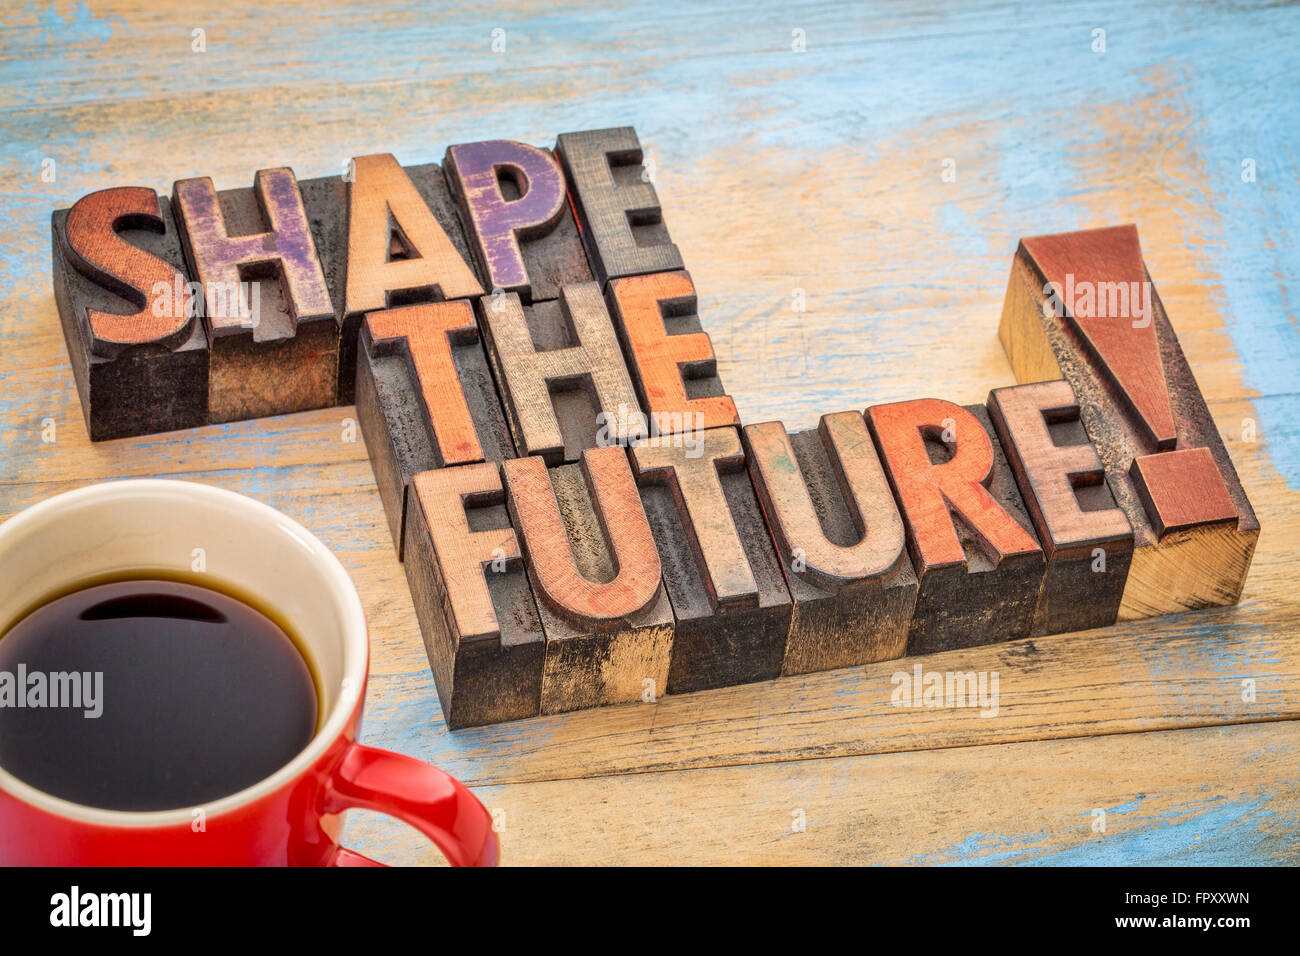 Shape the future - motivational phrase in vintage letterpress wood type blocks stained by color inks - Stock Image